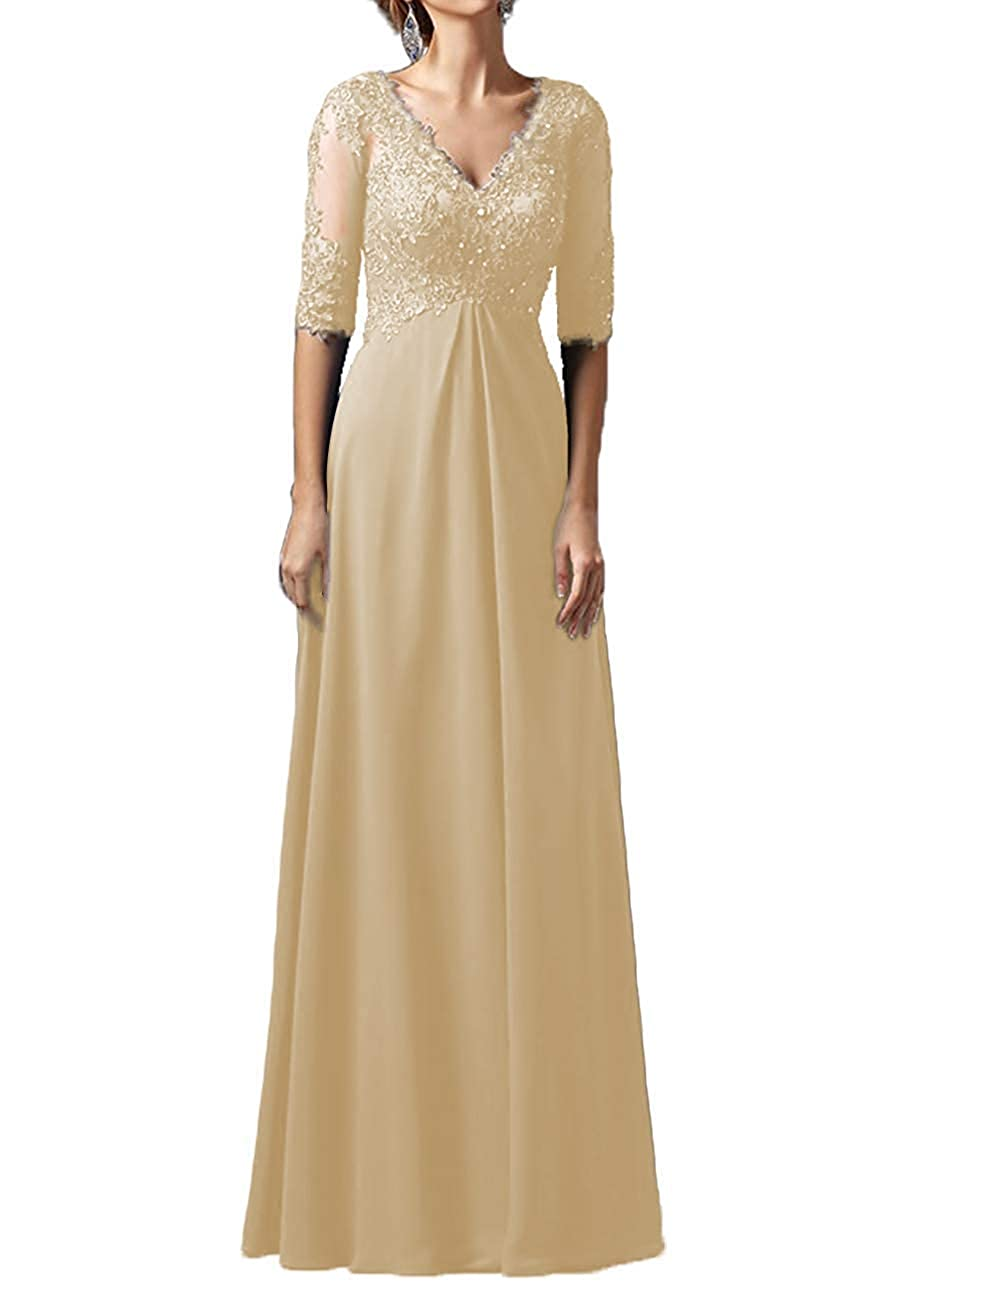 Champagne Mother Dress Long Sleeves V Neck Plus Size Mother of The Bride Dress Formal Party Evening Gowns